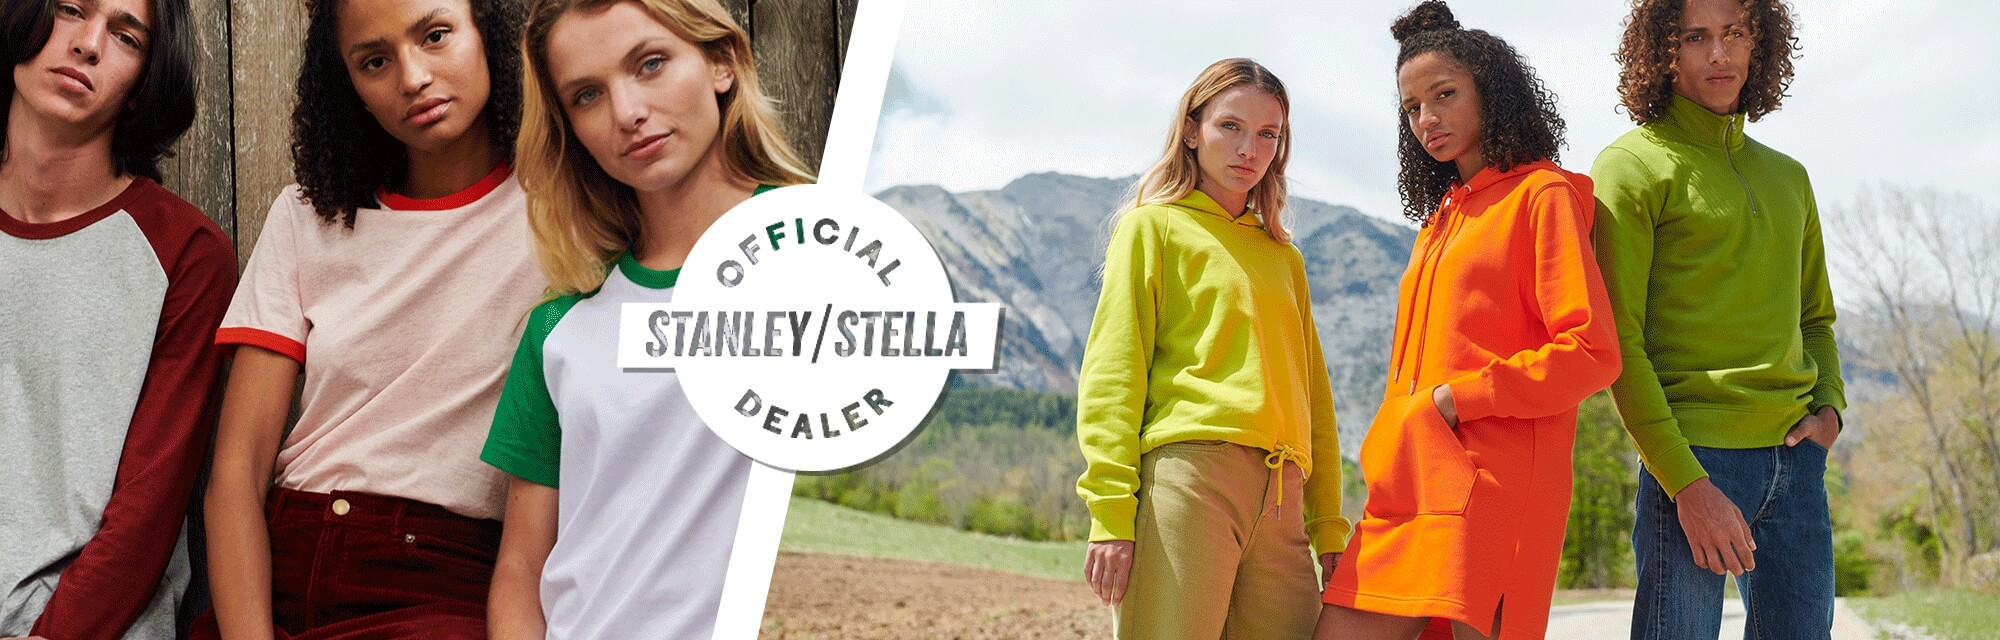 Nouvelle collection Stanley / Stella disponible chez Conscience à La Rochelle, Charente-Maritime